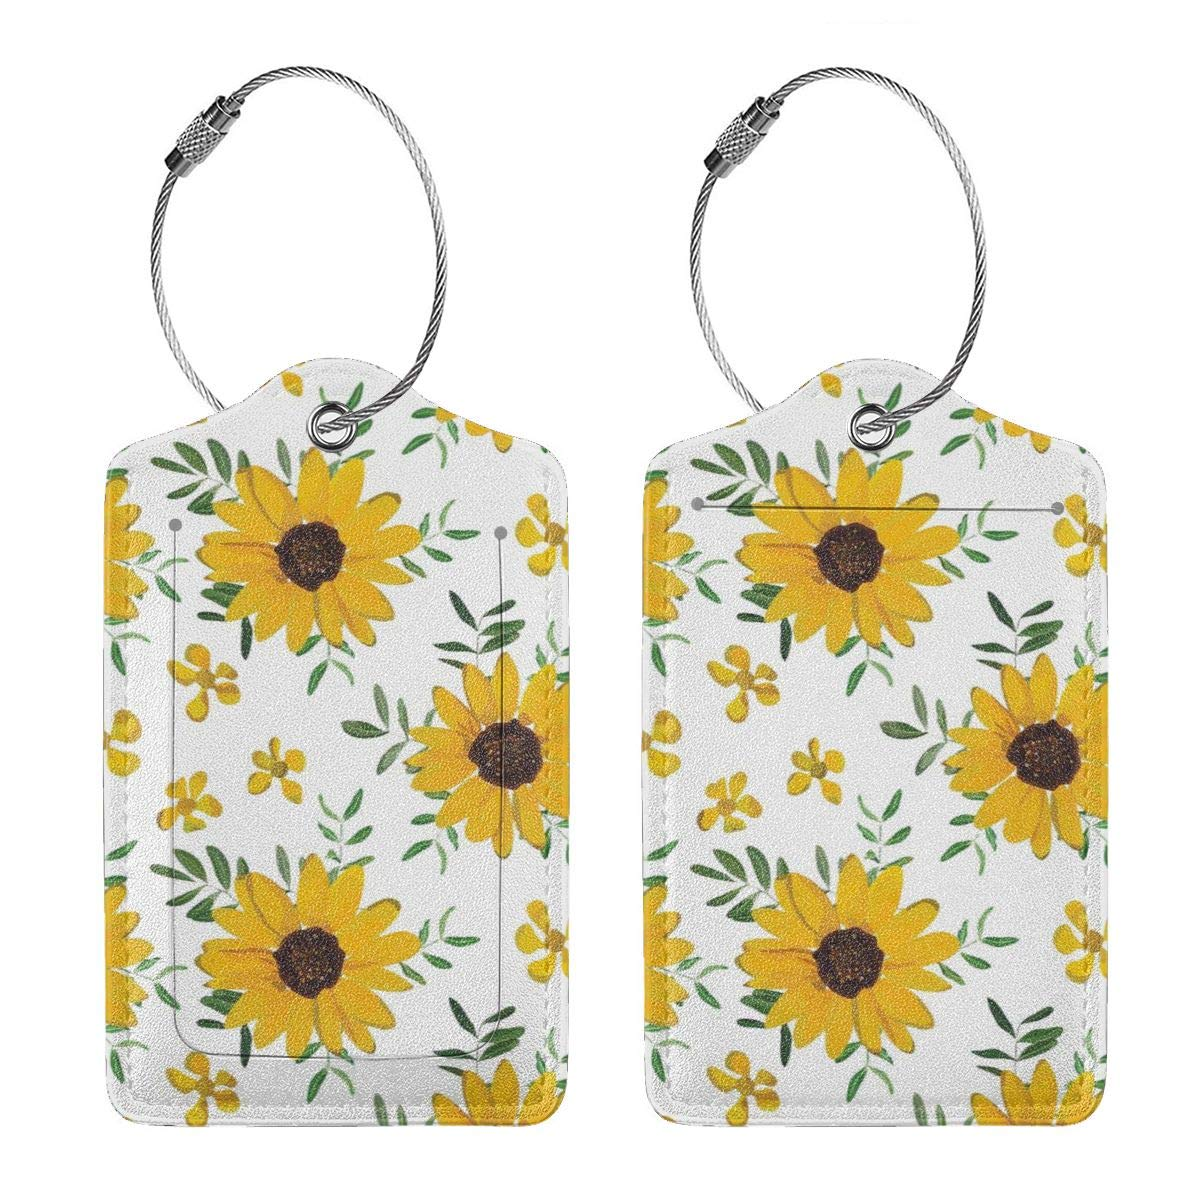 Vintage Yellow Sunflower Luggage Tag Label Travel Bag Label With Privacy Cover Luggage Tag Leather Personalized Suitcase Tag Travel Accessories